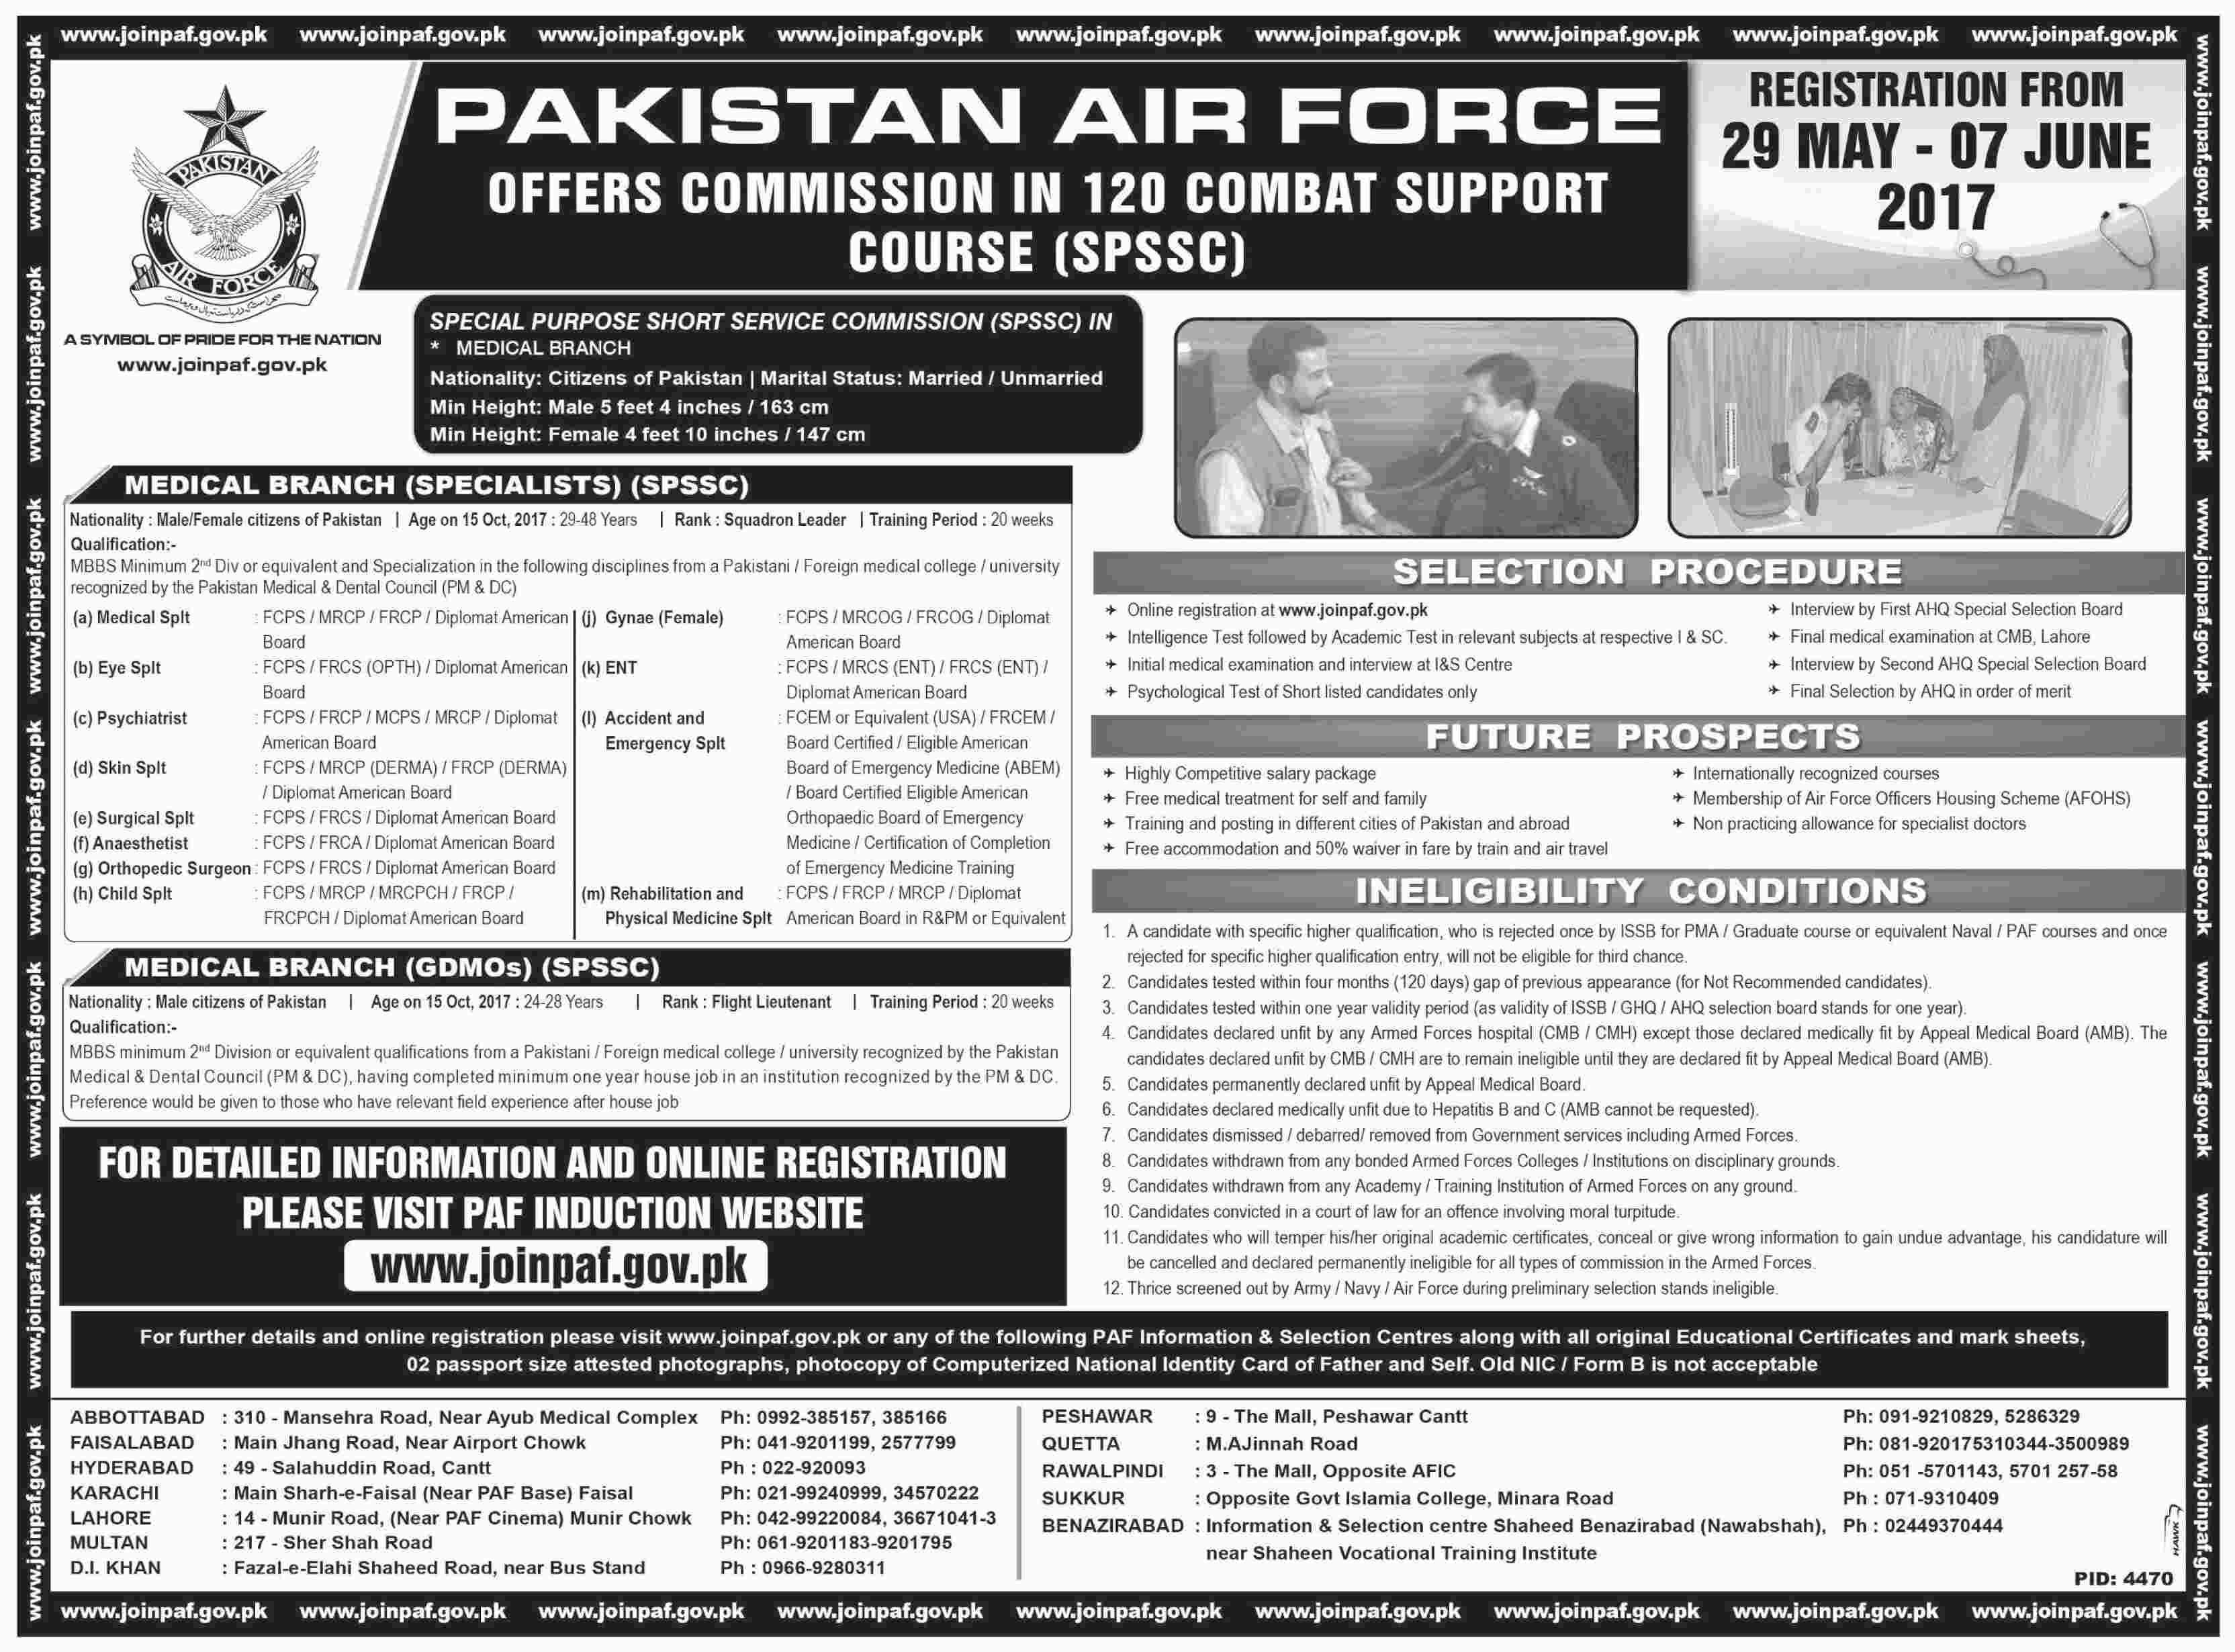 paf pakistan air force officer commission in combat 120 support course spssc jobs 2017 how to registration online test schedule